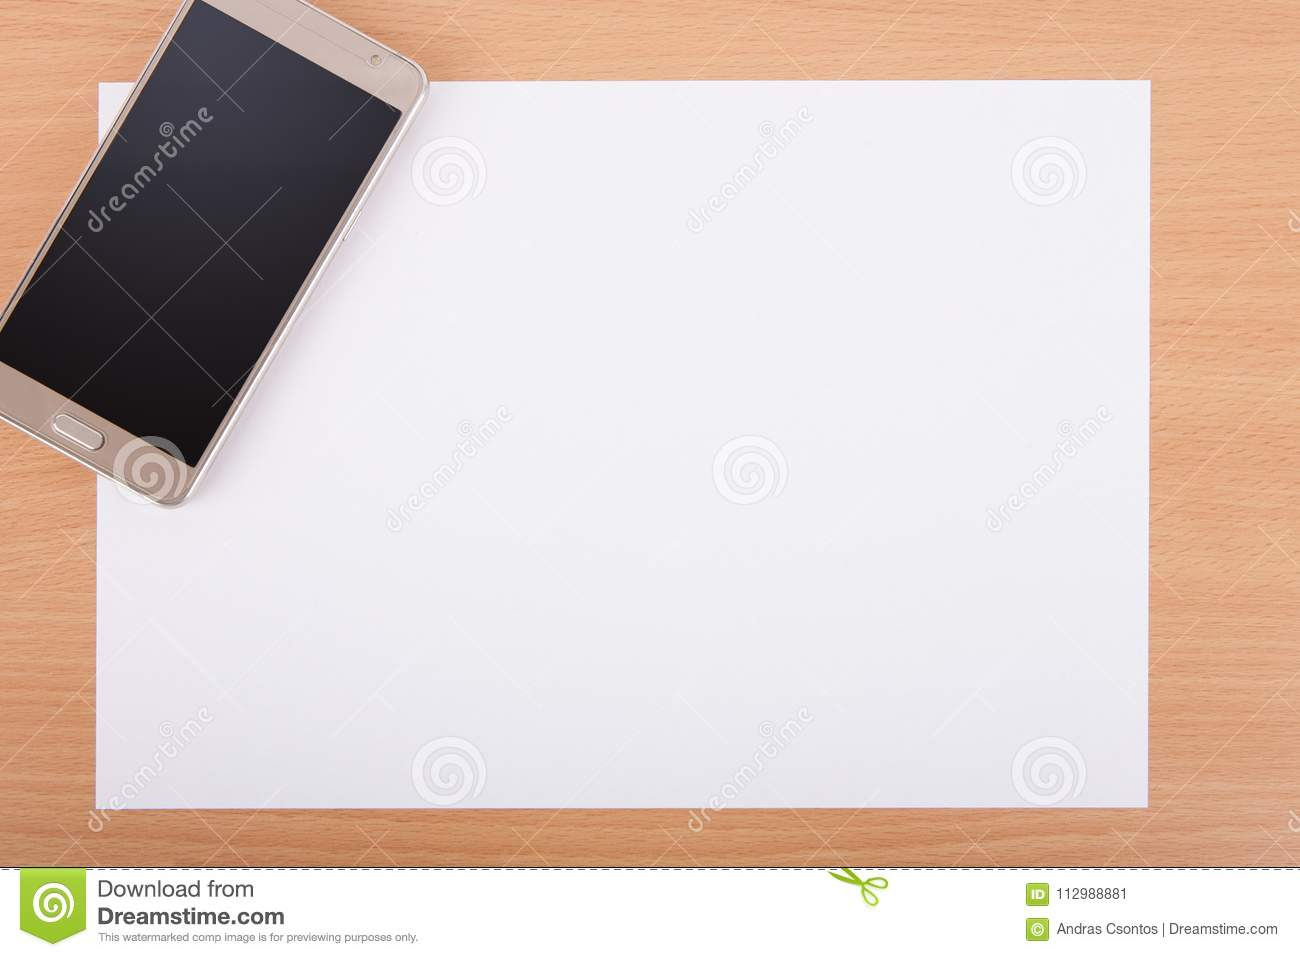 Blank A4 white paper with a smartphone on an office desk